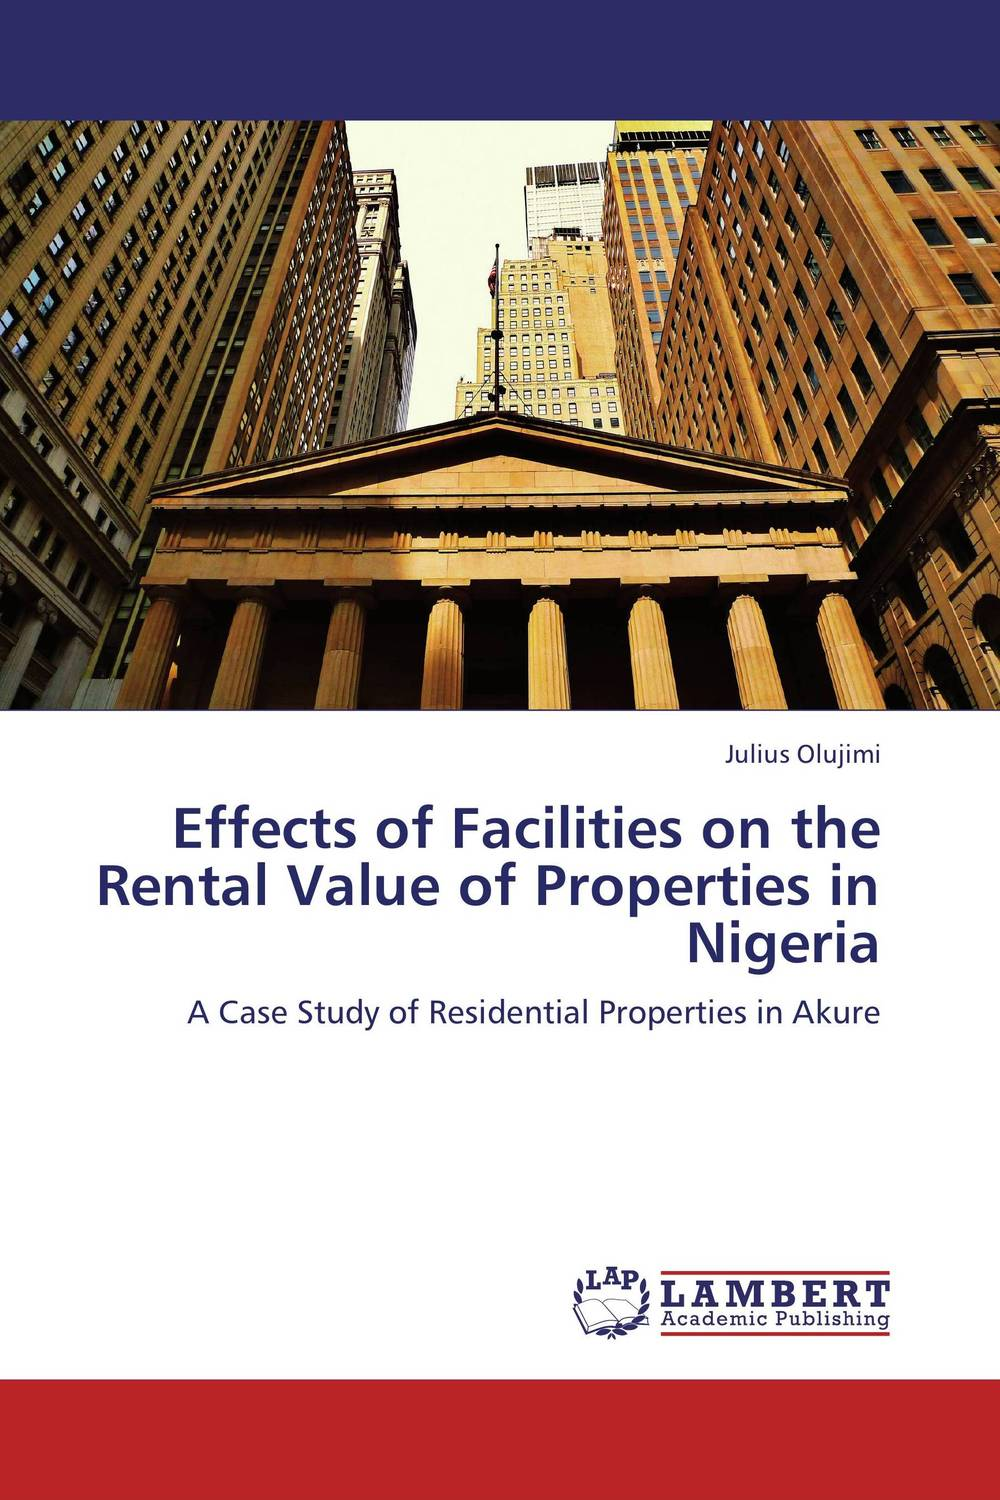 Effects of Facilities on the Rental Value of Properties in Nigeria